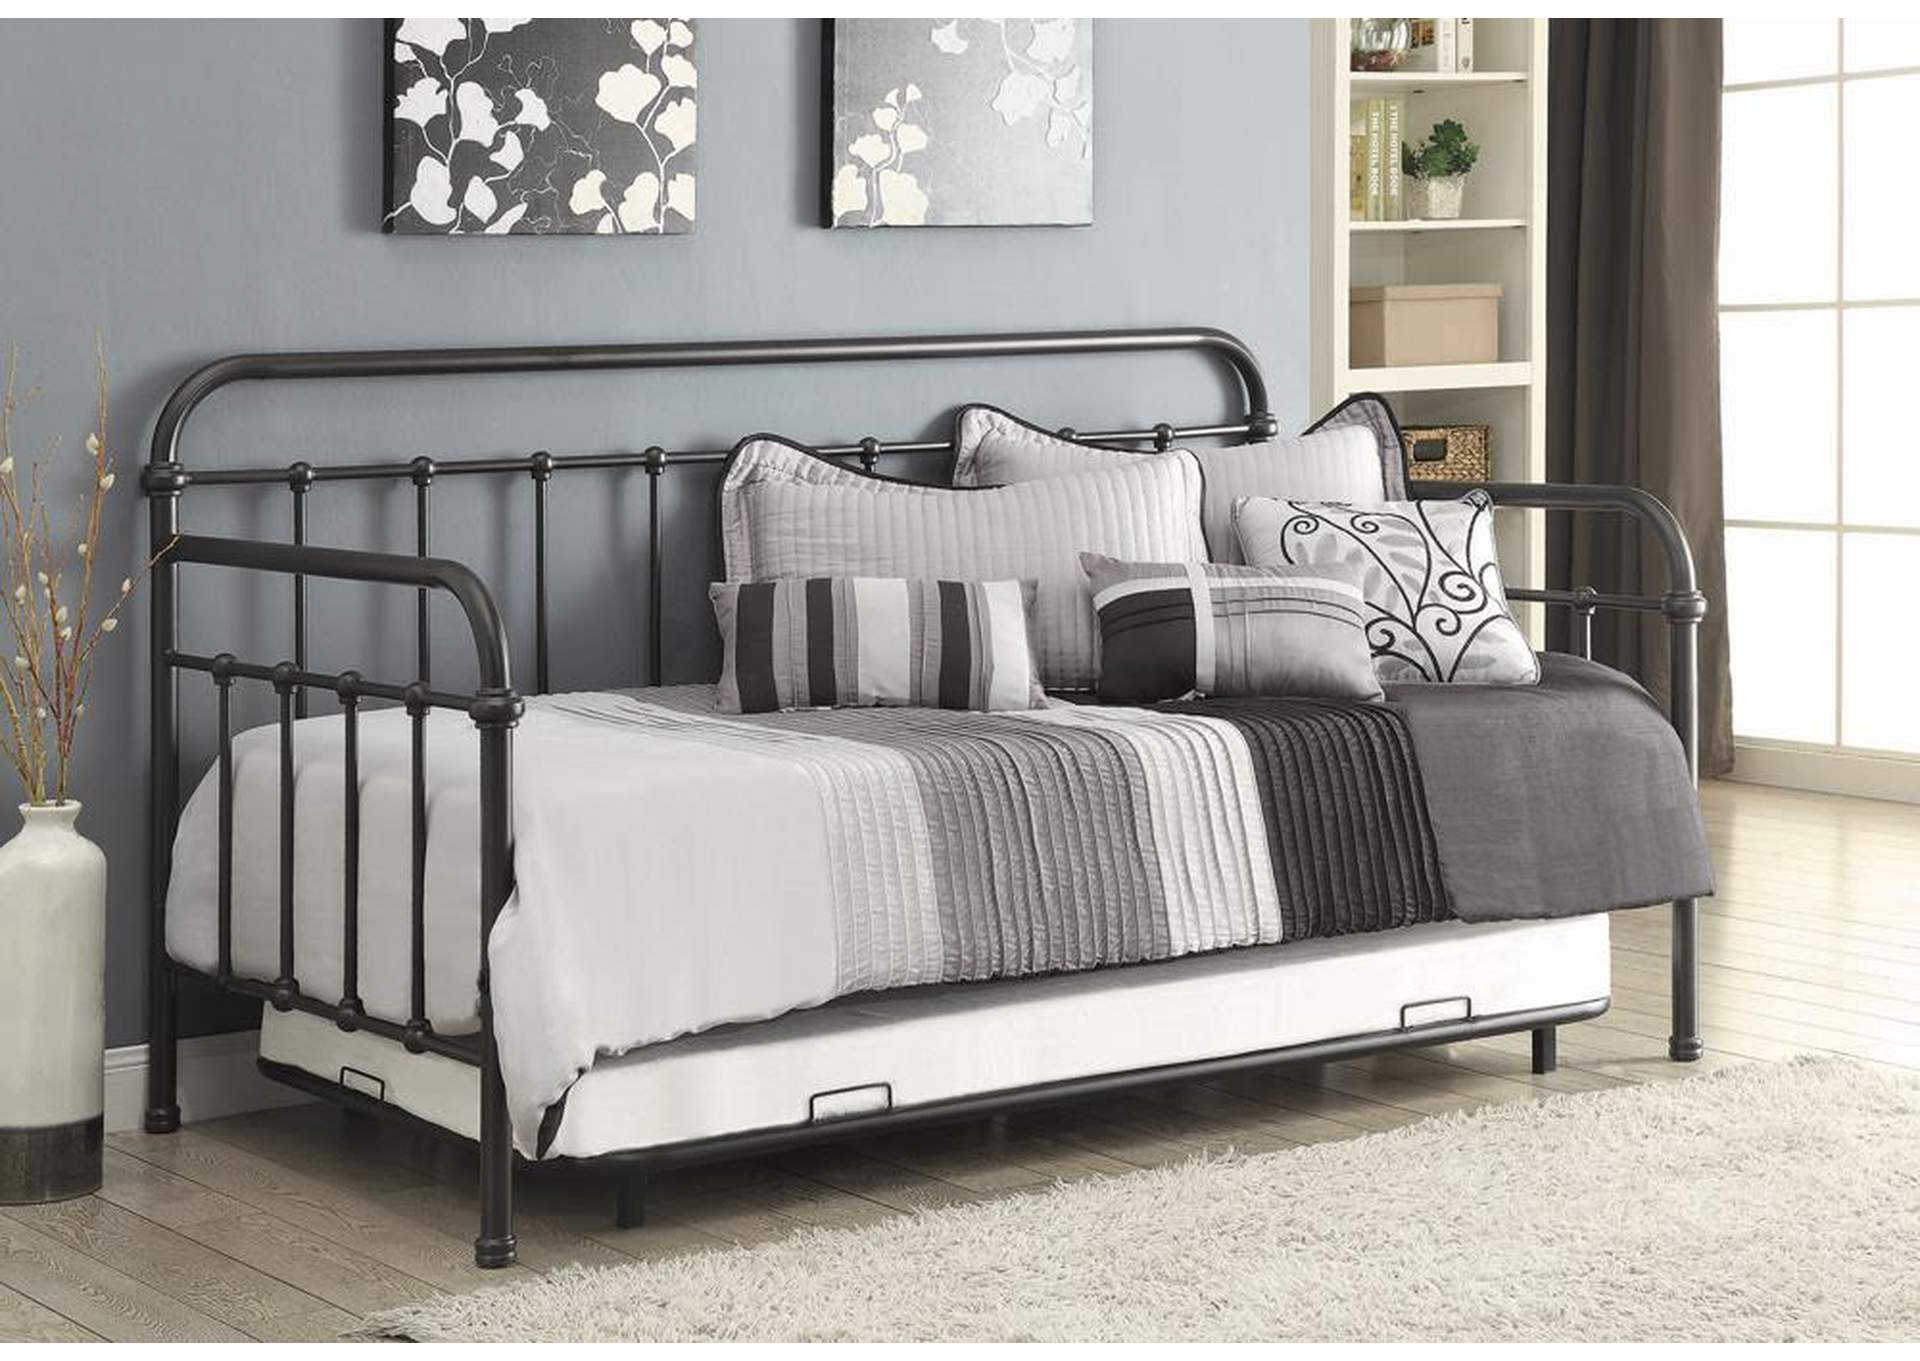 Davis Home Furniture Asheville Nc White Daybed